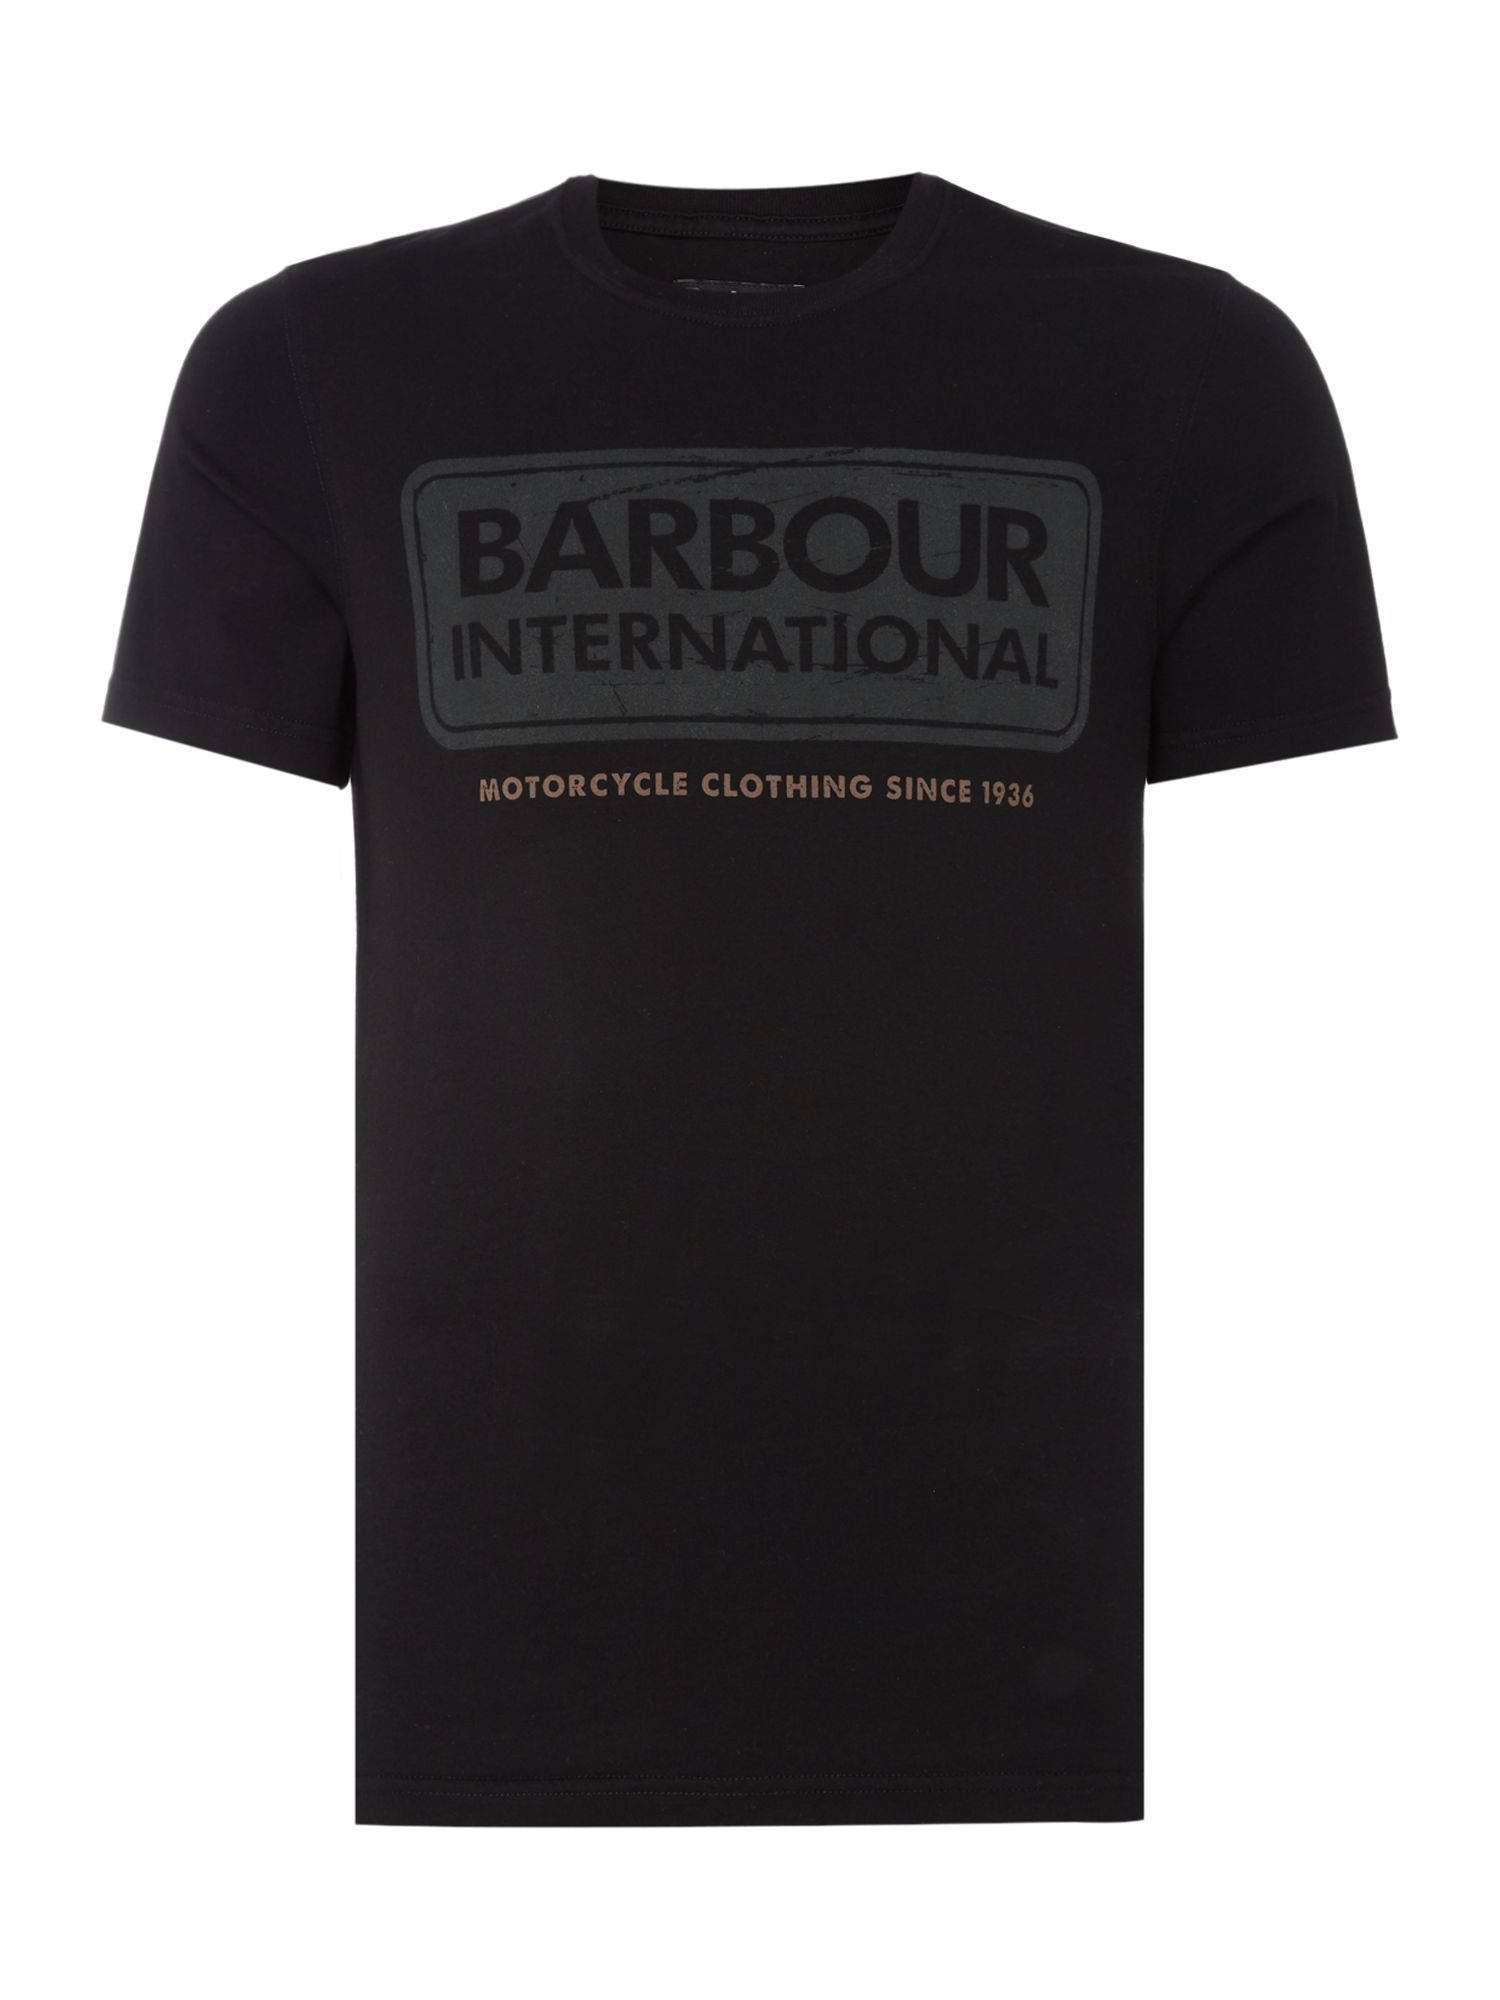 Men's Barbour International logo t-shirt, Black